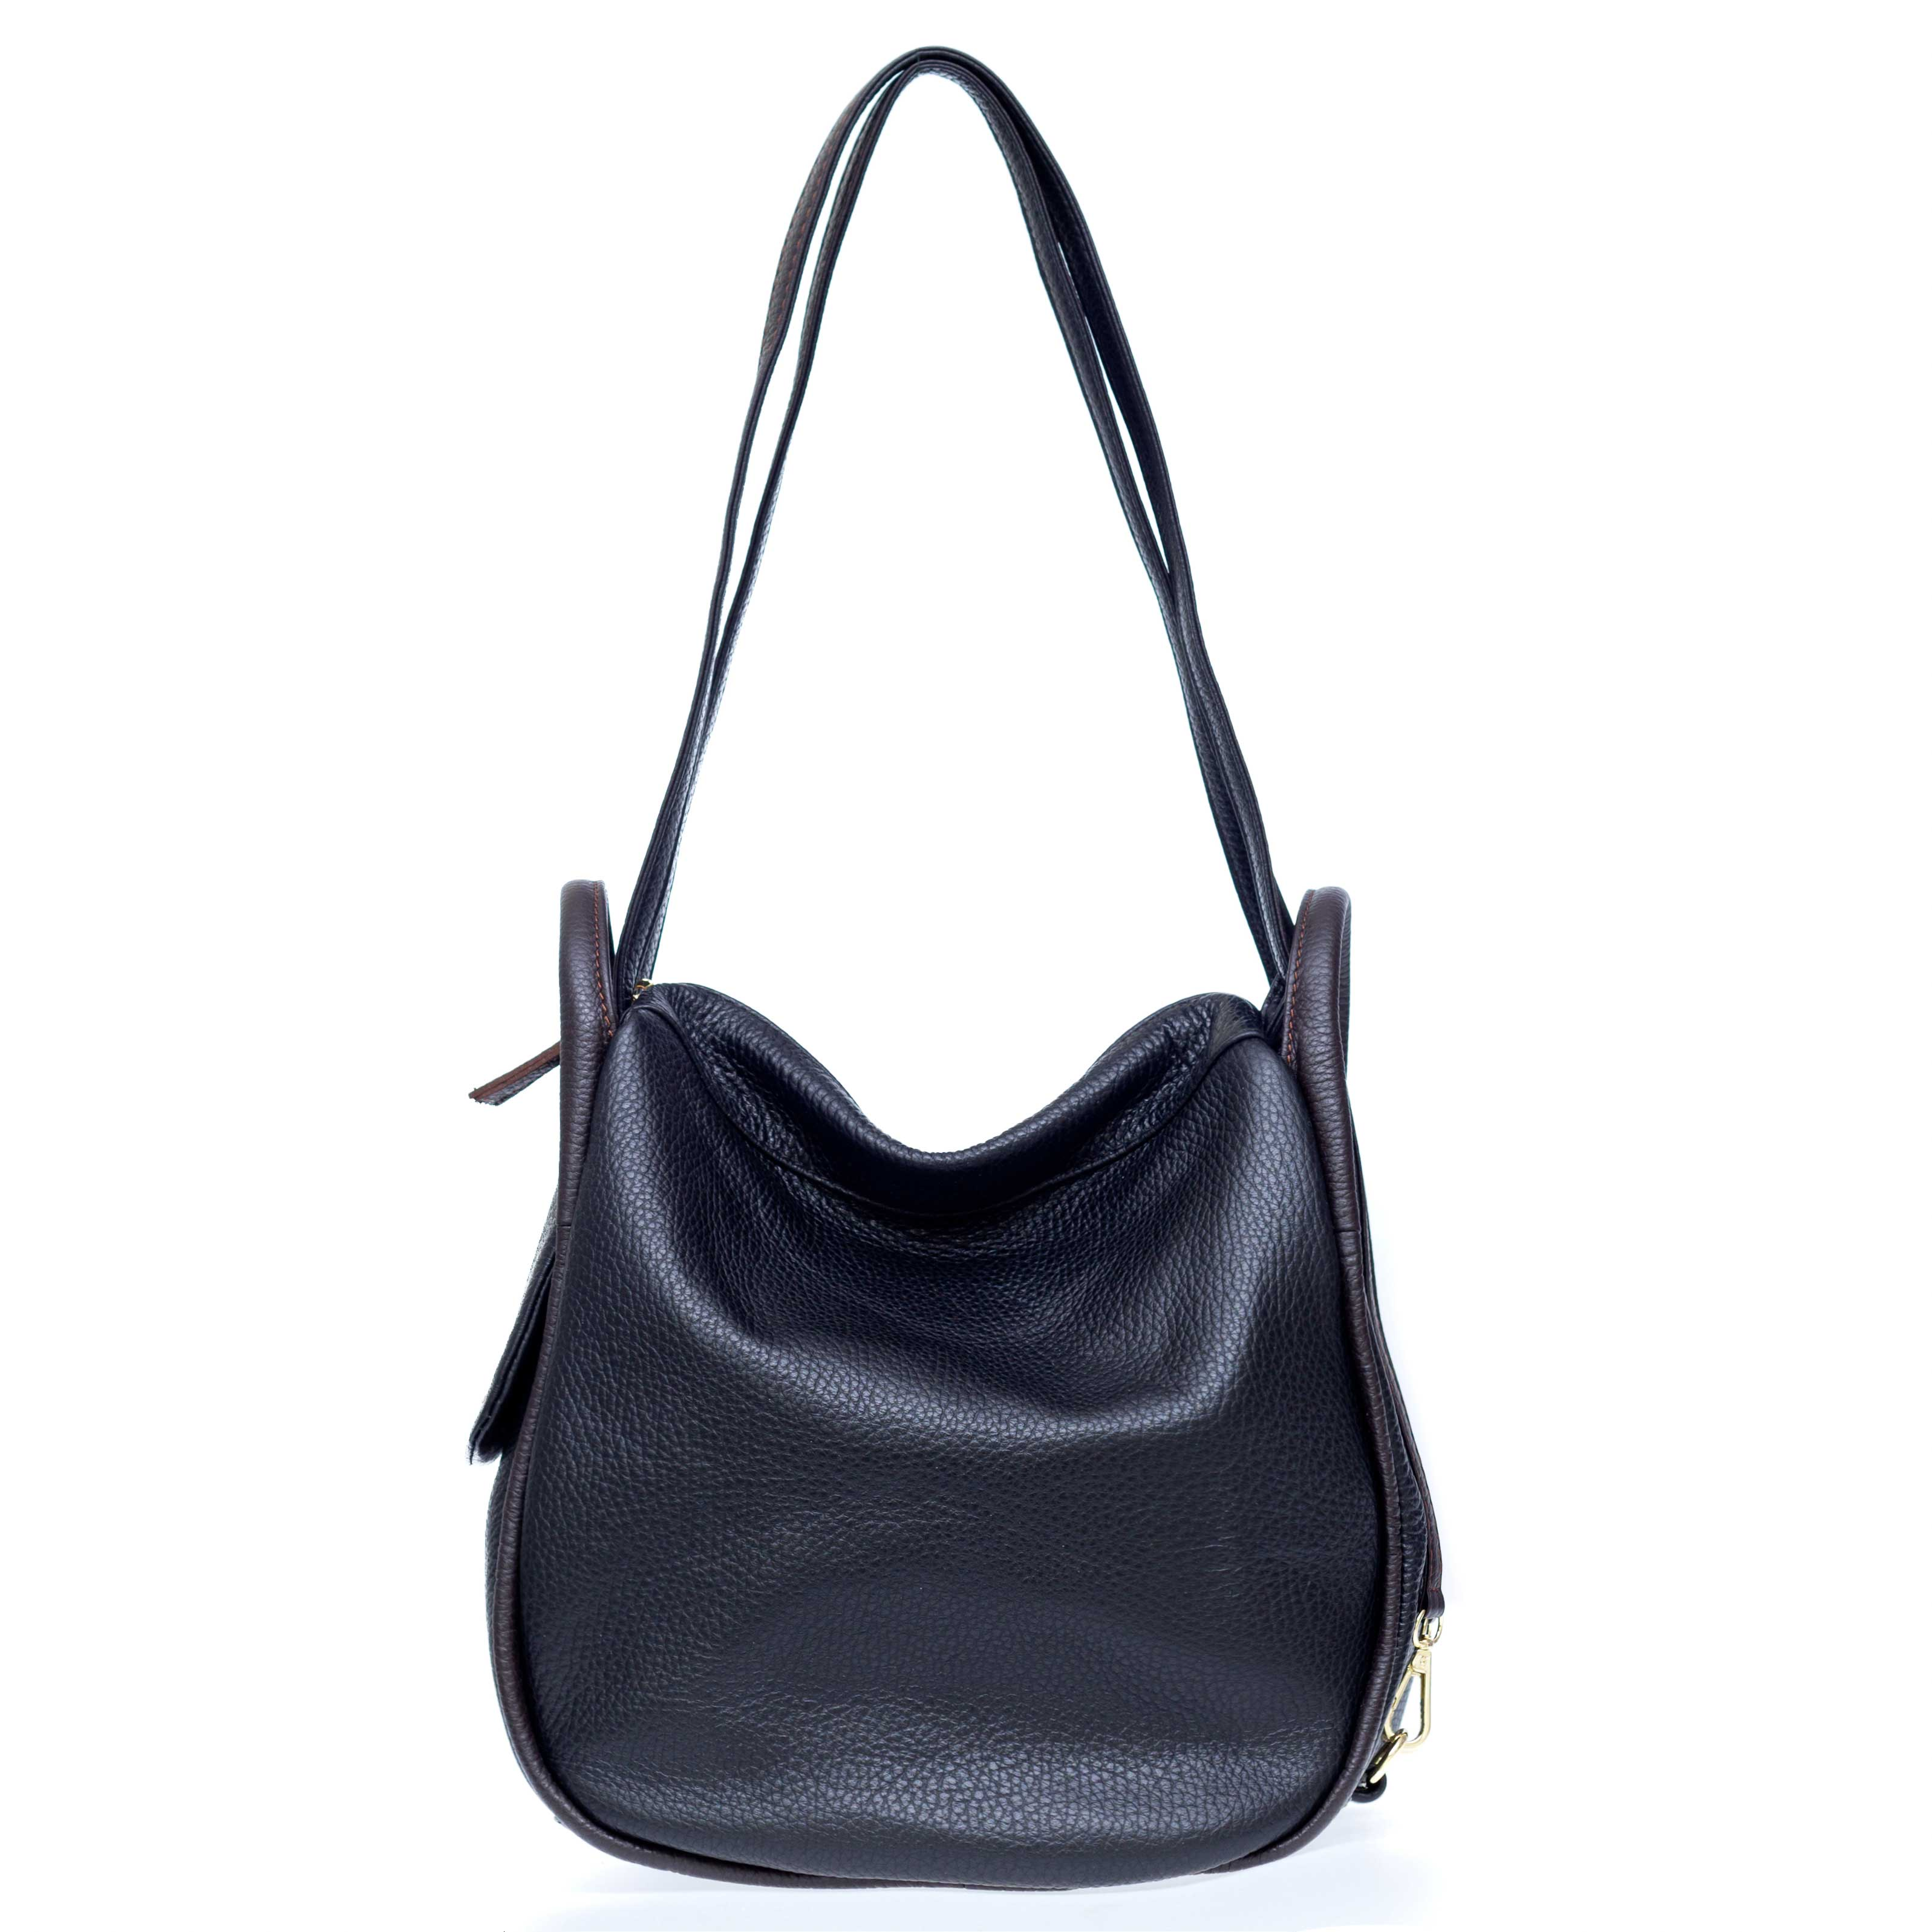 Bruno Rossi Italian Made Black Pebbled Leather Convertible Hobo Bag Backpack